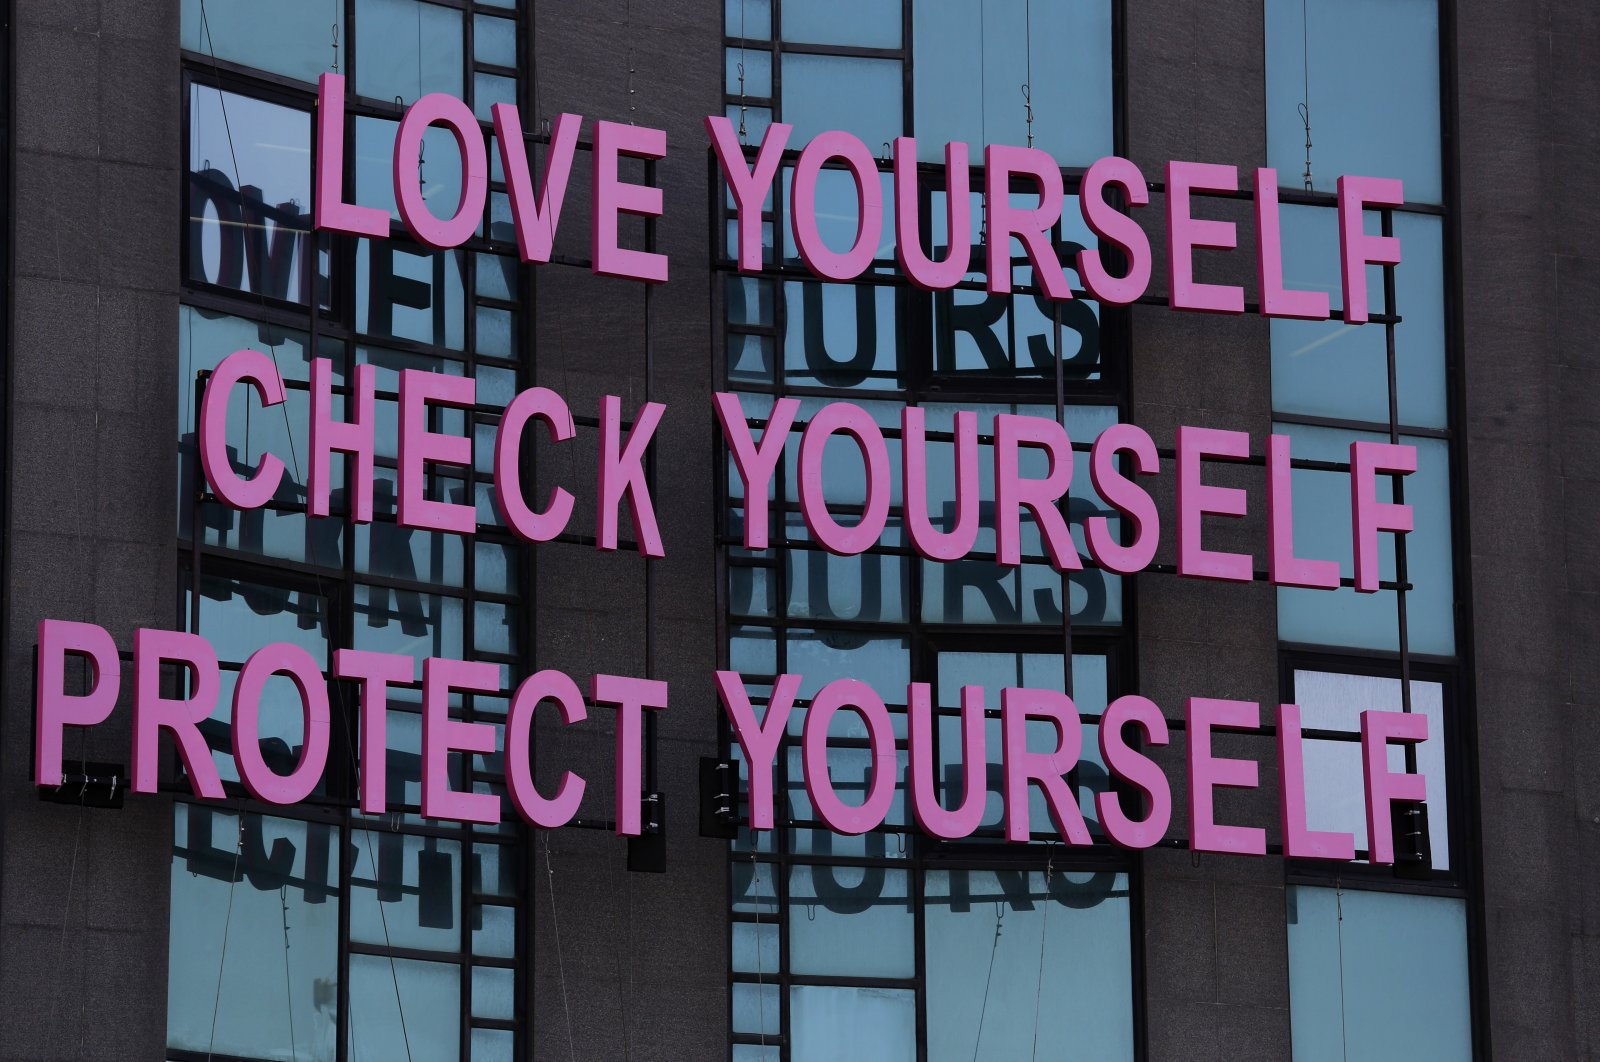 A message for breast cancer awareness decorates a building during a campaign for Breast Cancer Awareness Month, in Beirut, Lebanon, Oct. 11, 2018. (AP Photo)